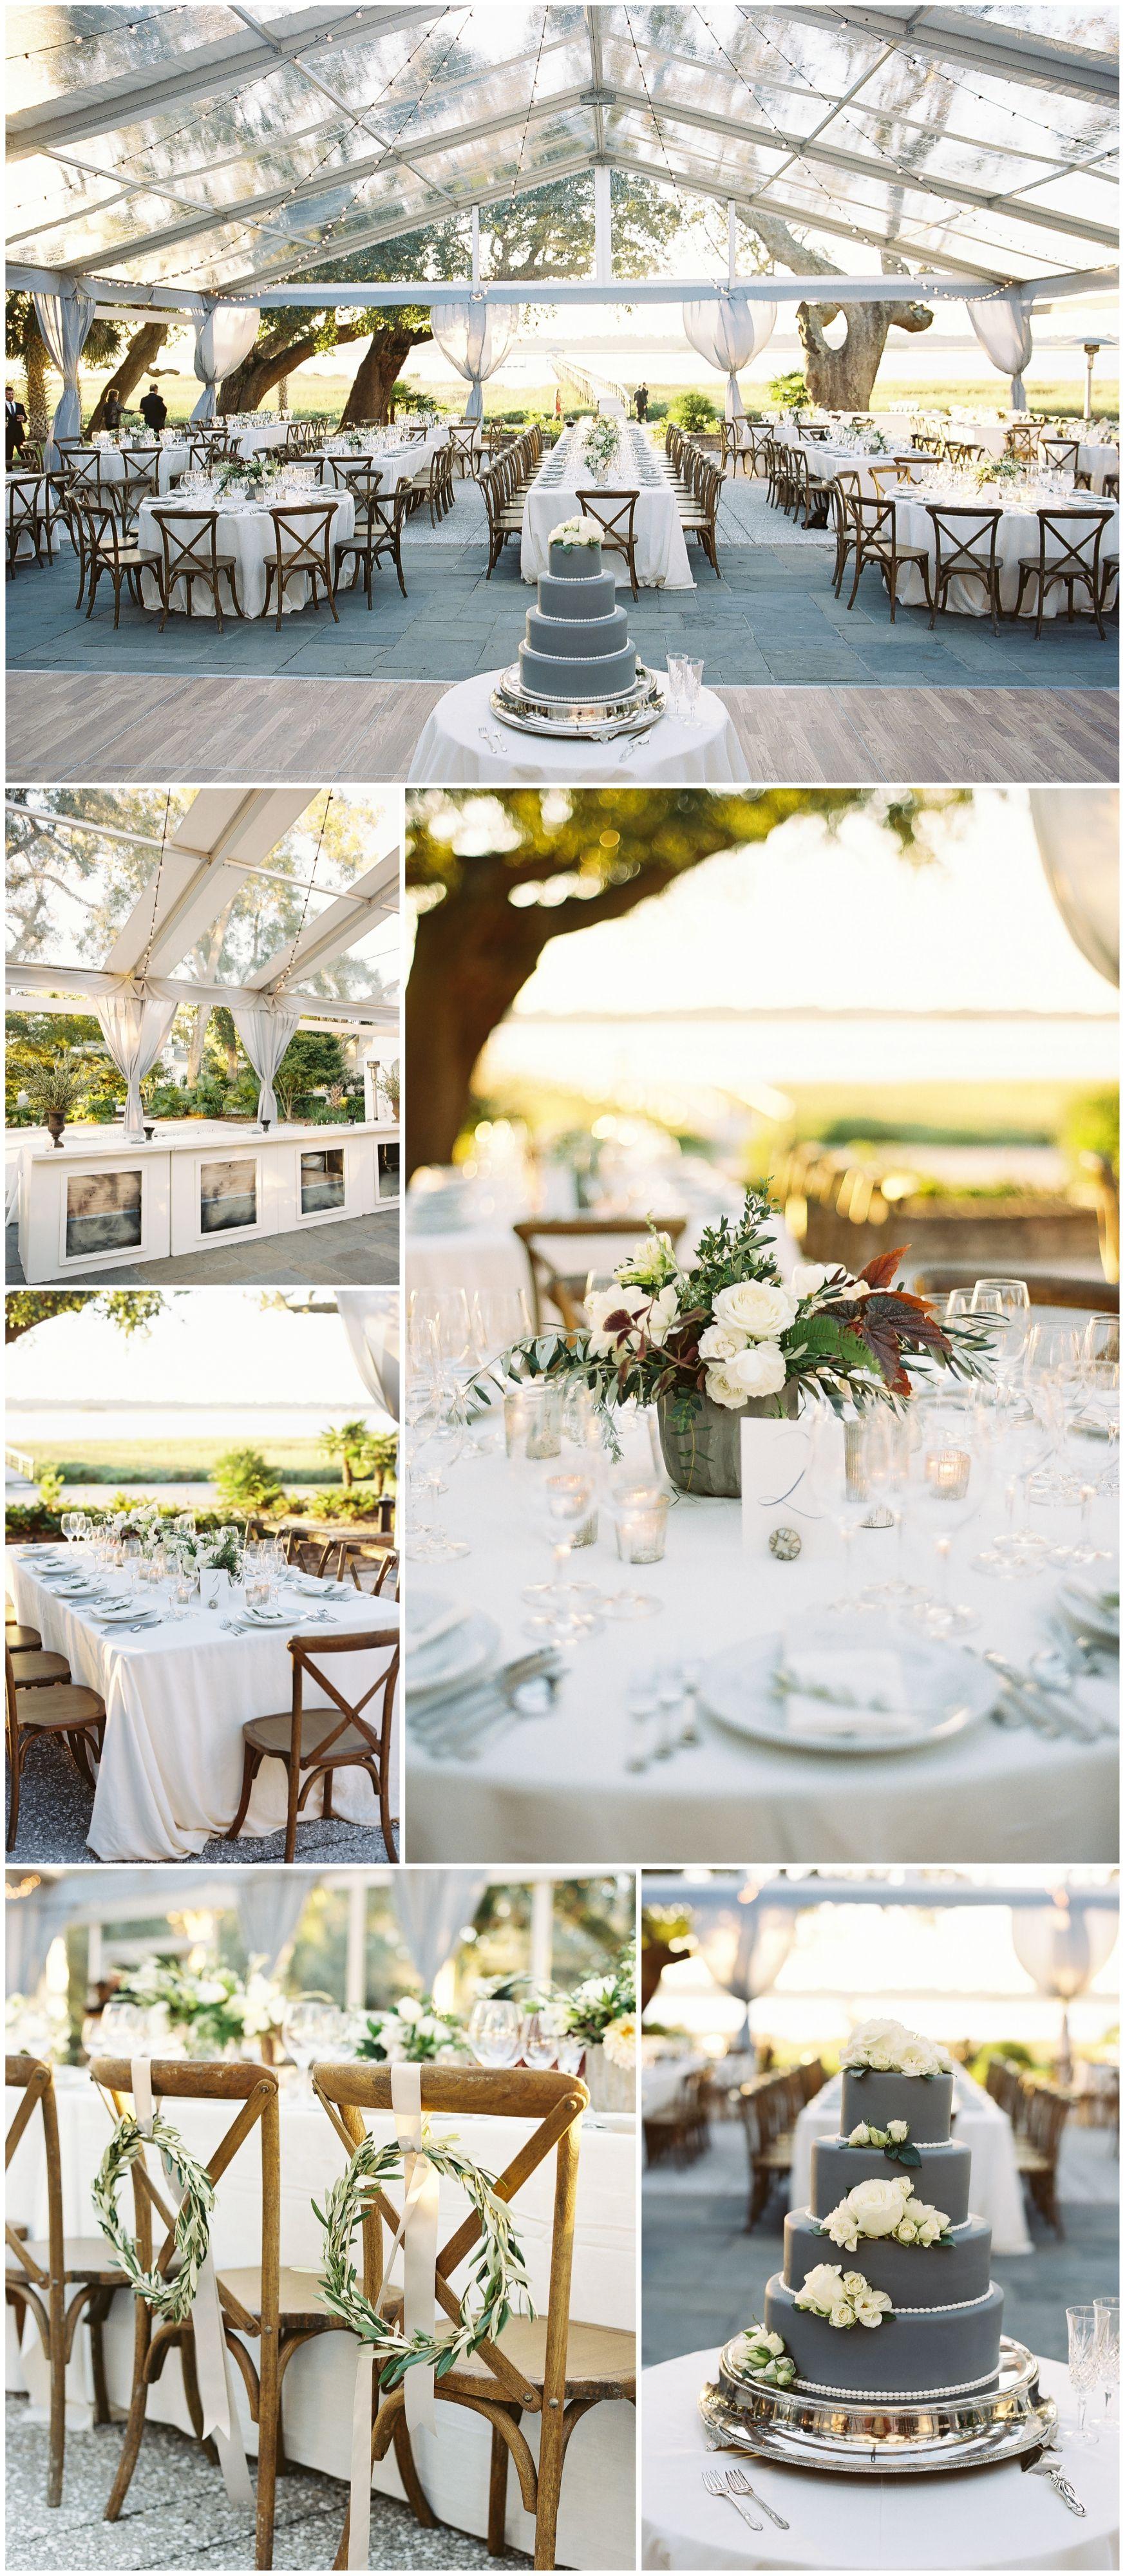 The smarter way to wed clear tent grey weddings and wedding designs